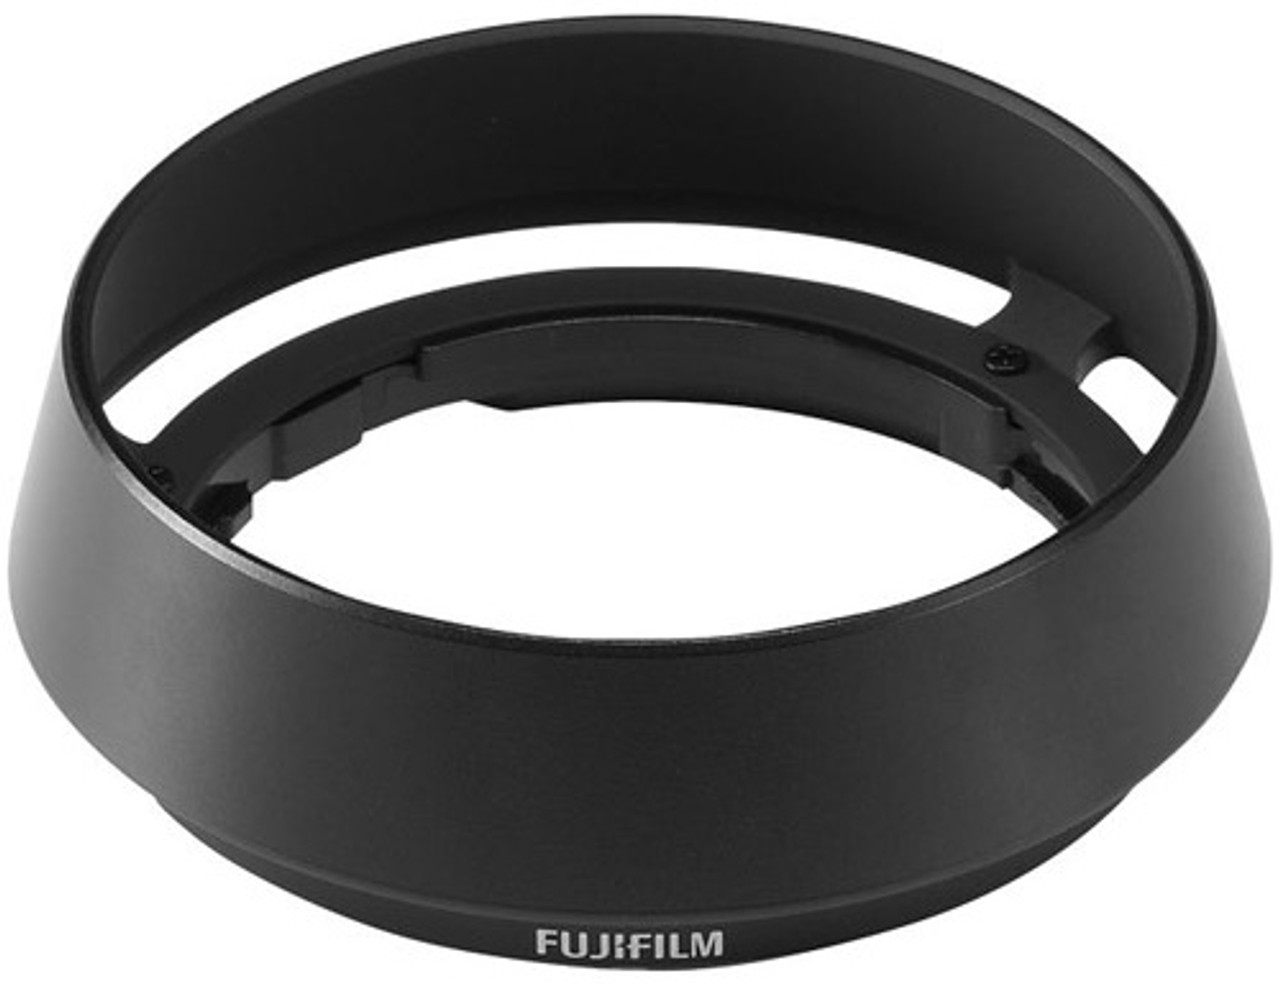 Fujifilm Lens Hood for XF23mmF2 and XF35mmF2 R WR Lenses (Black)